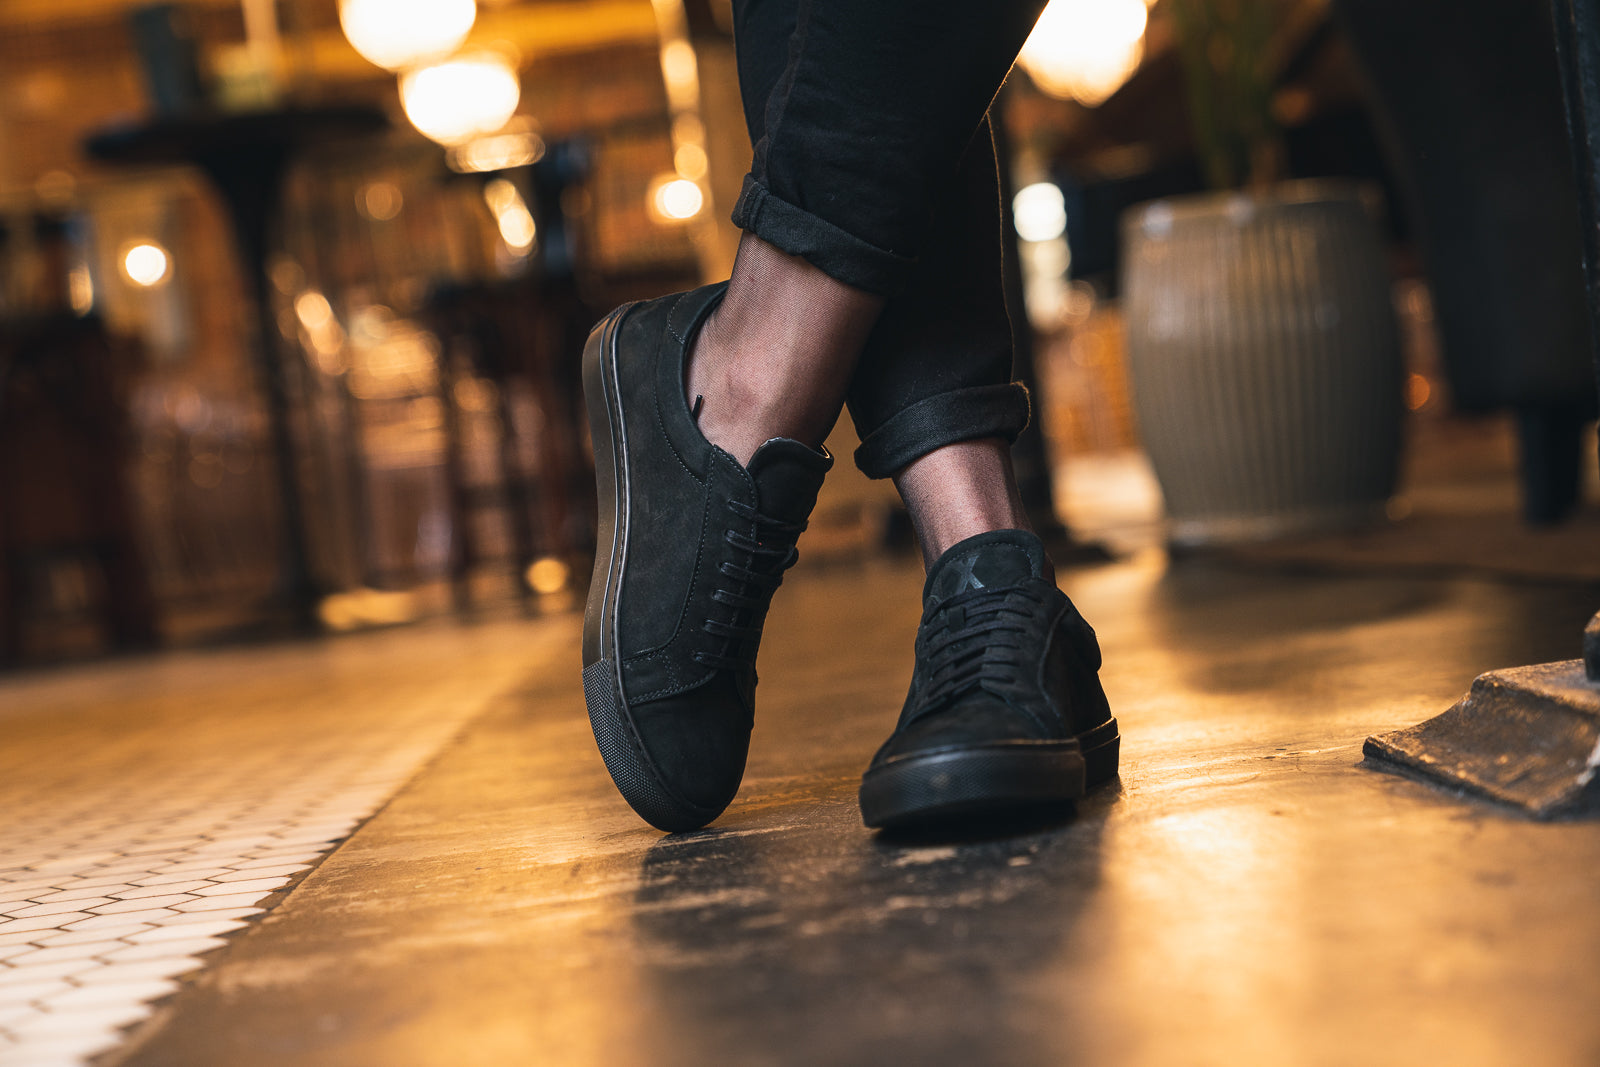 NESS / BLACK NUBUCK-Womens Sneakers | LANX Proper Men's Shoes